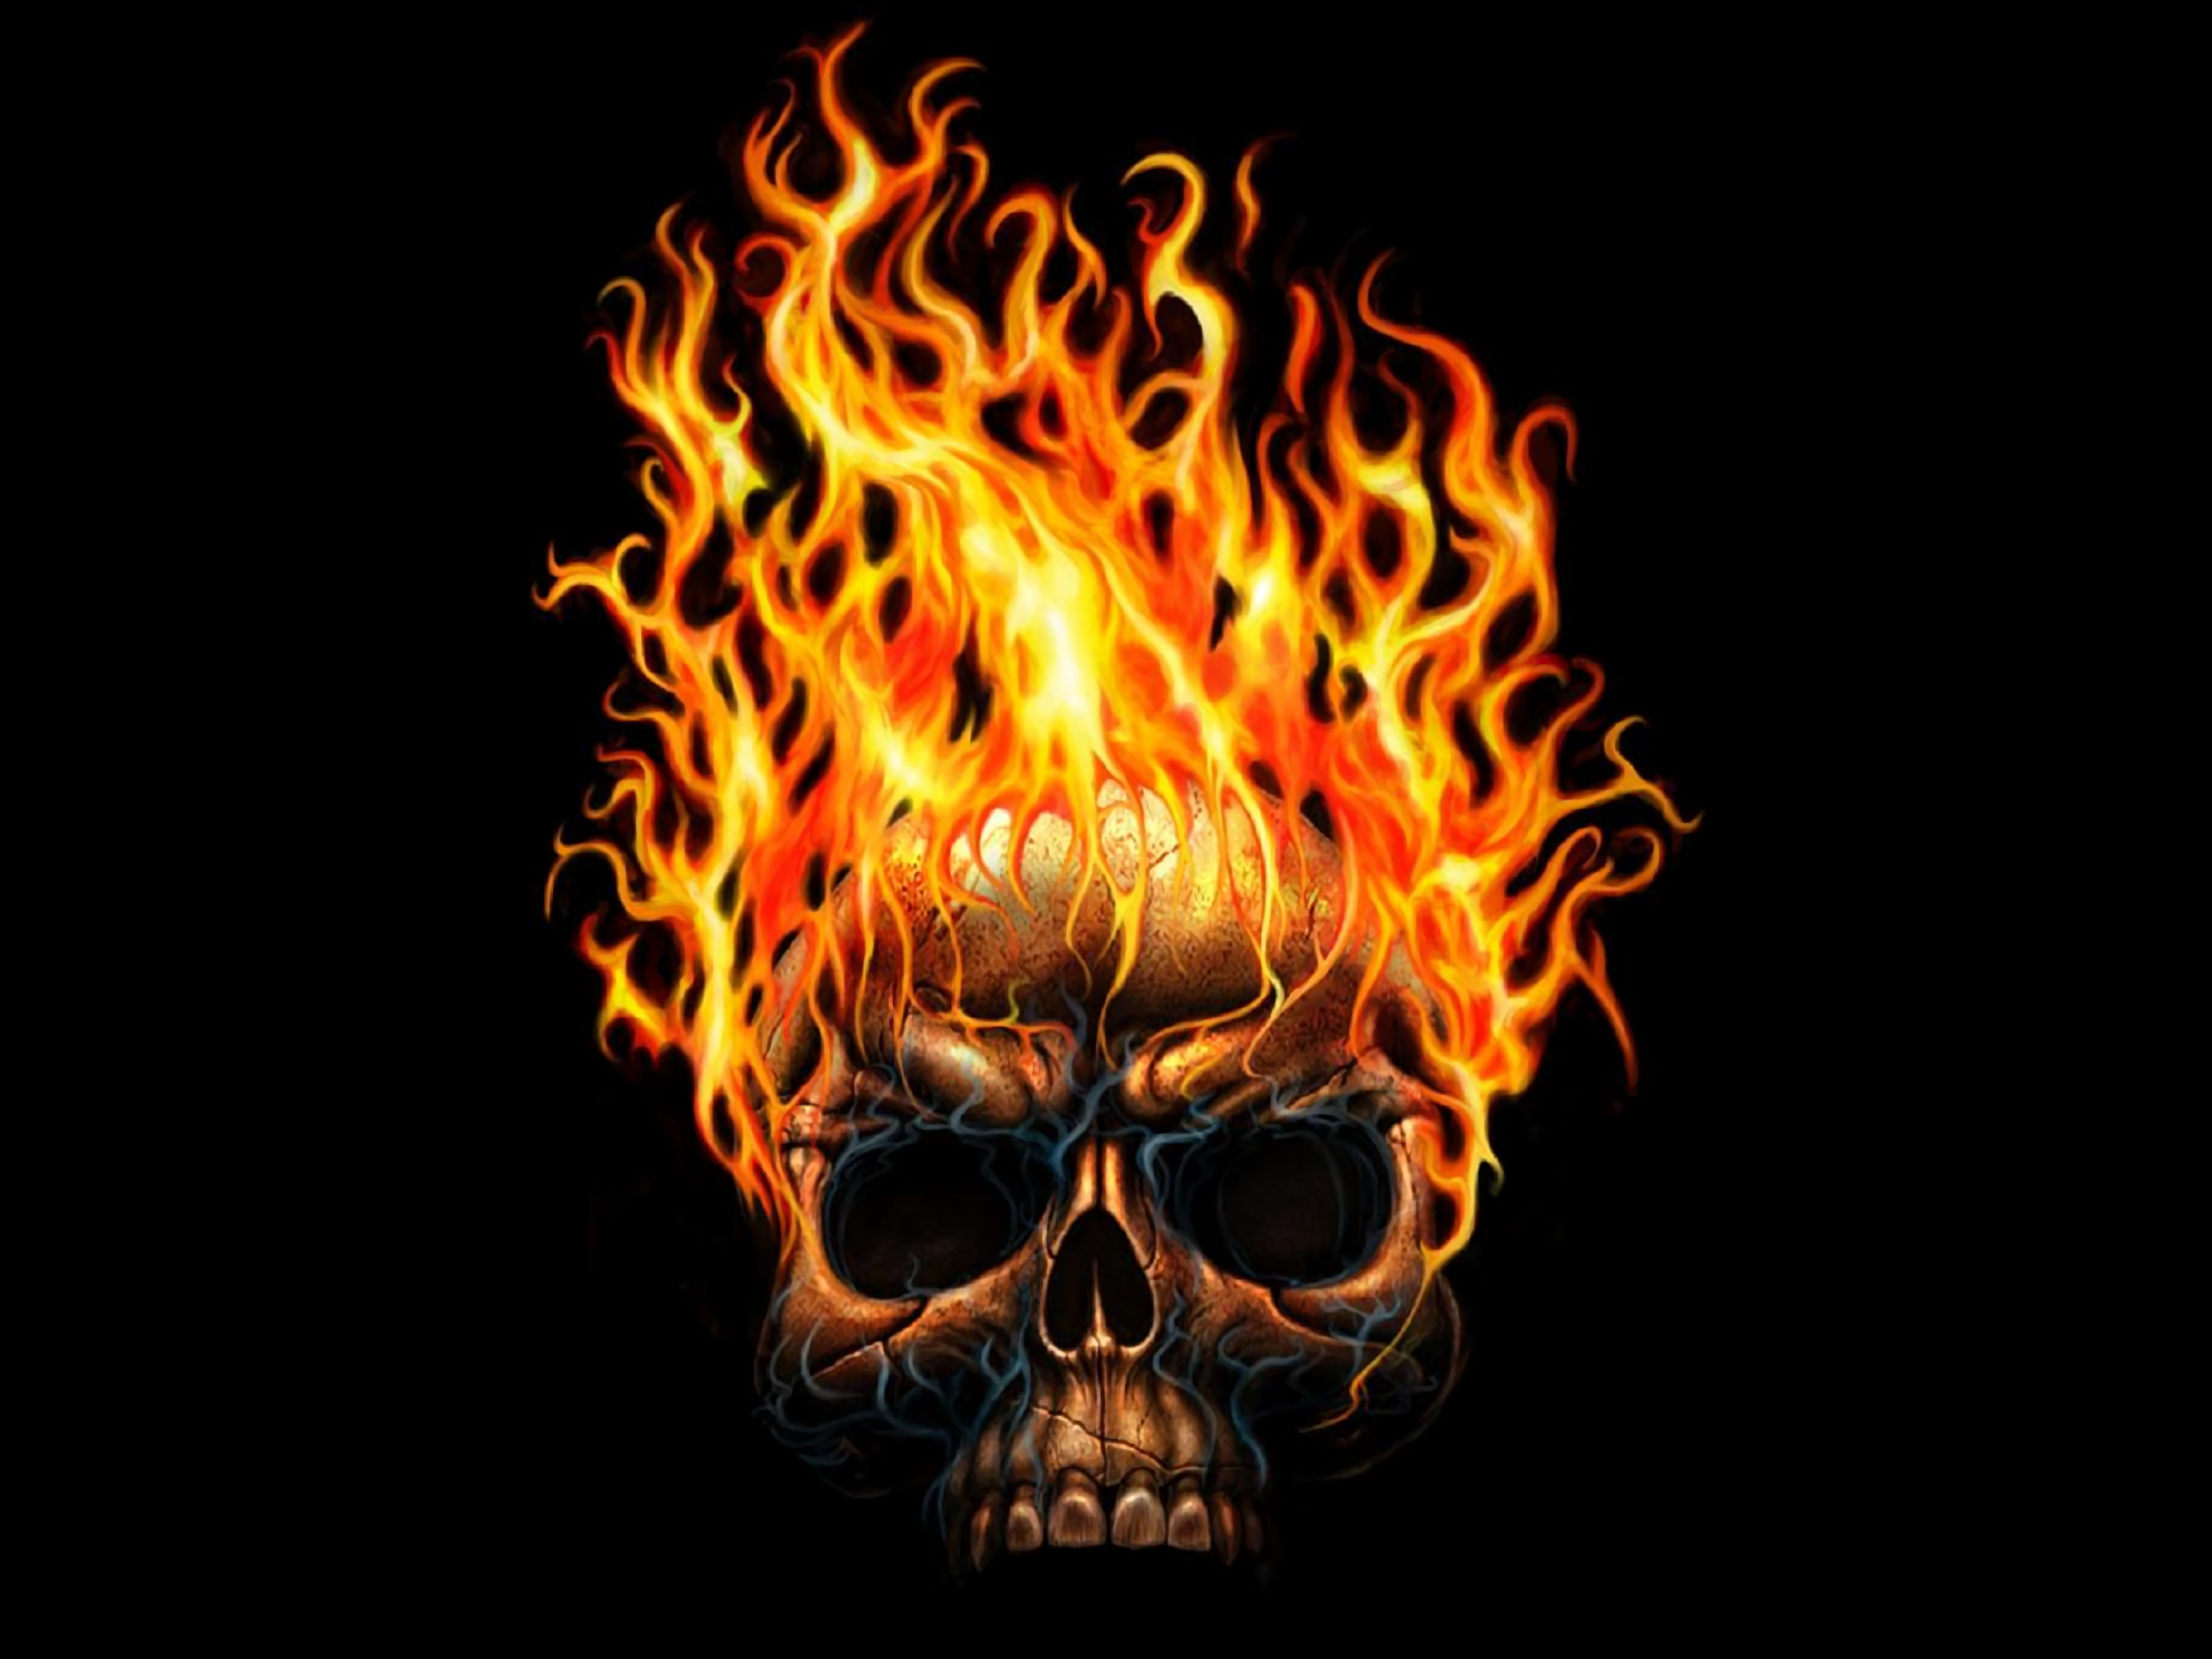 HD Fire Wallpapers Desktop Backgrounds X Images And